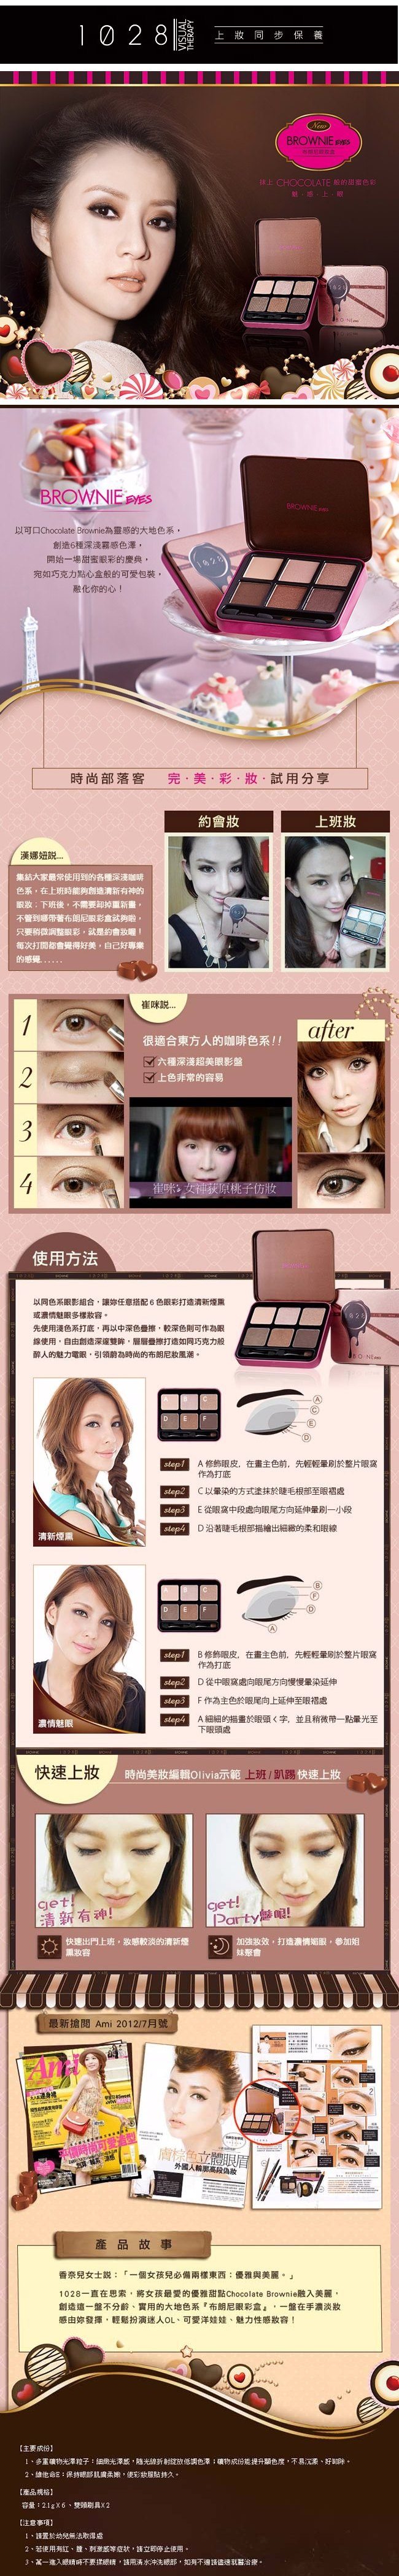 1028-visual-therapy-brownie-eyeshadow-kit.jpg